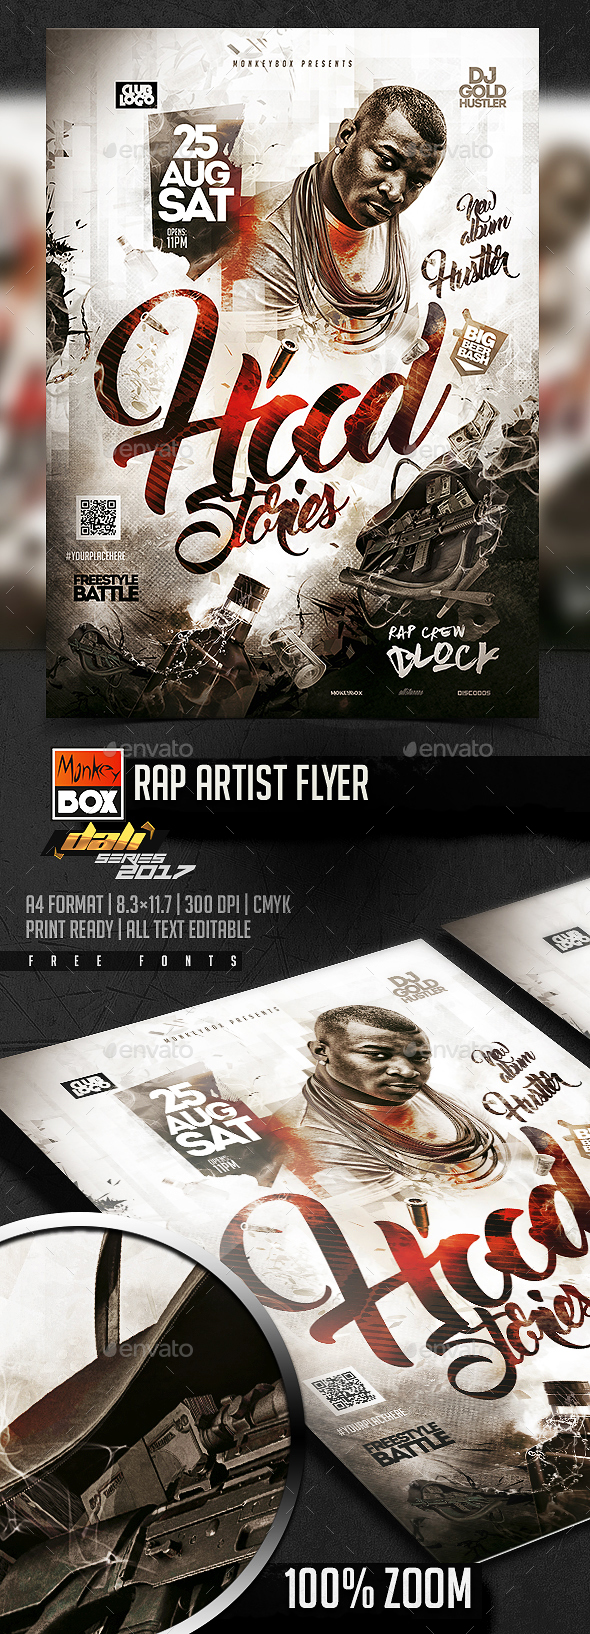 Rap Artist Flyer - Flyers Print Templates